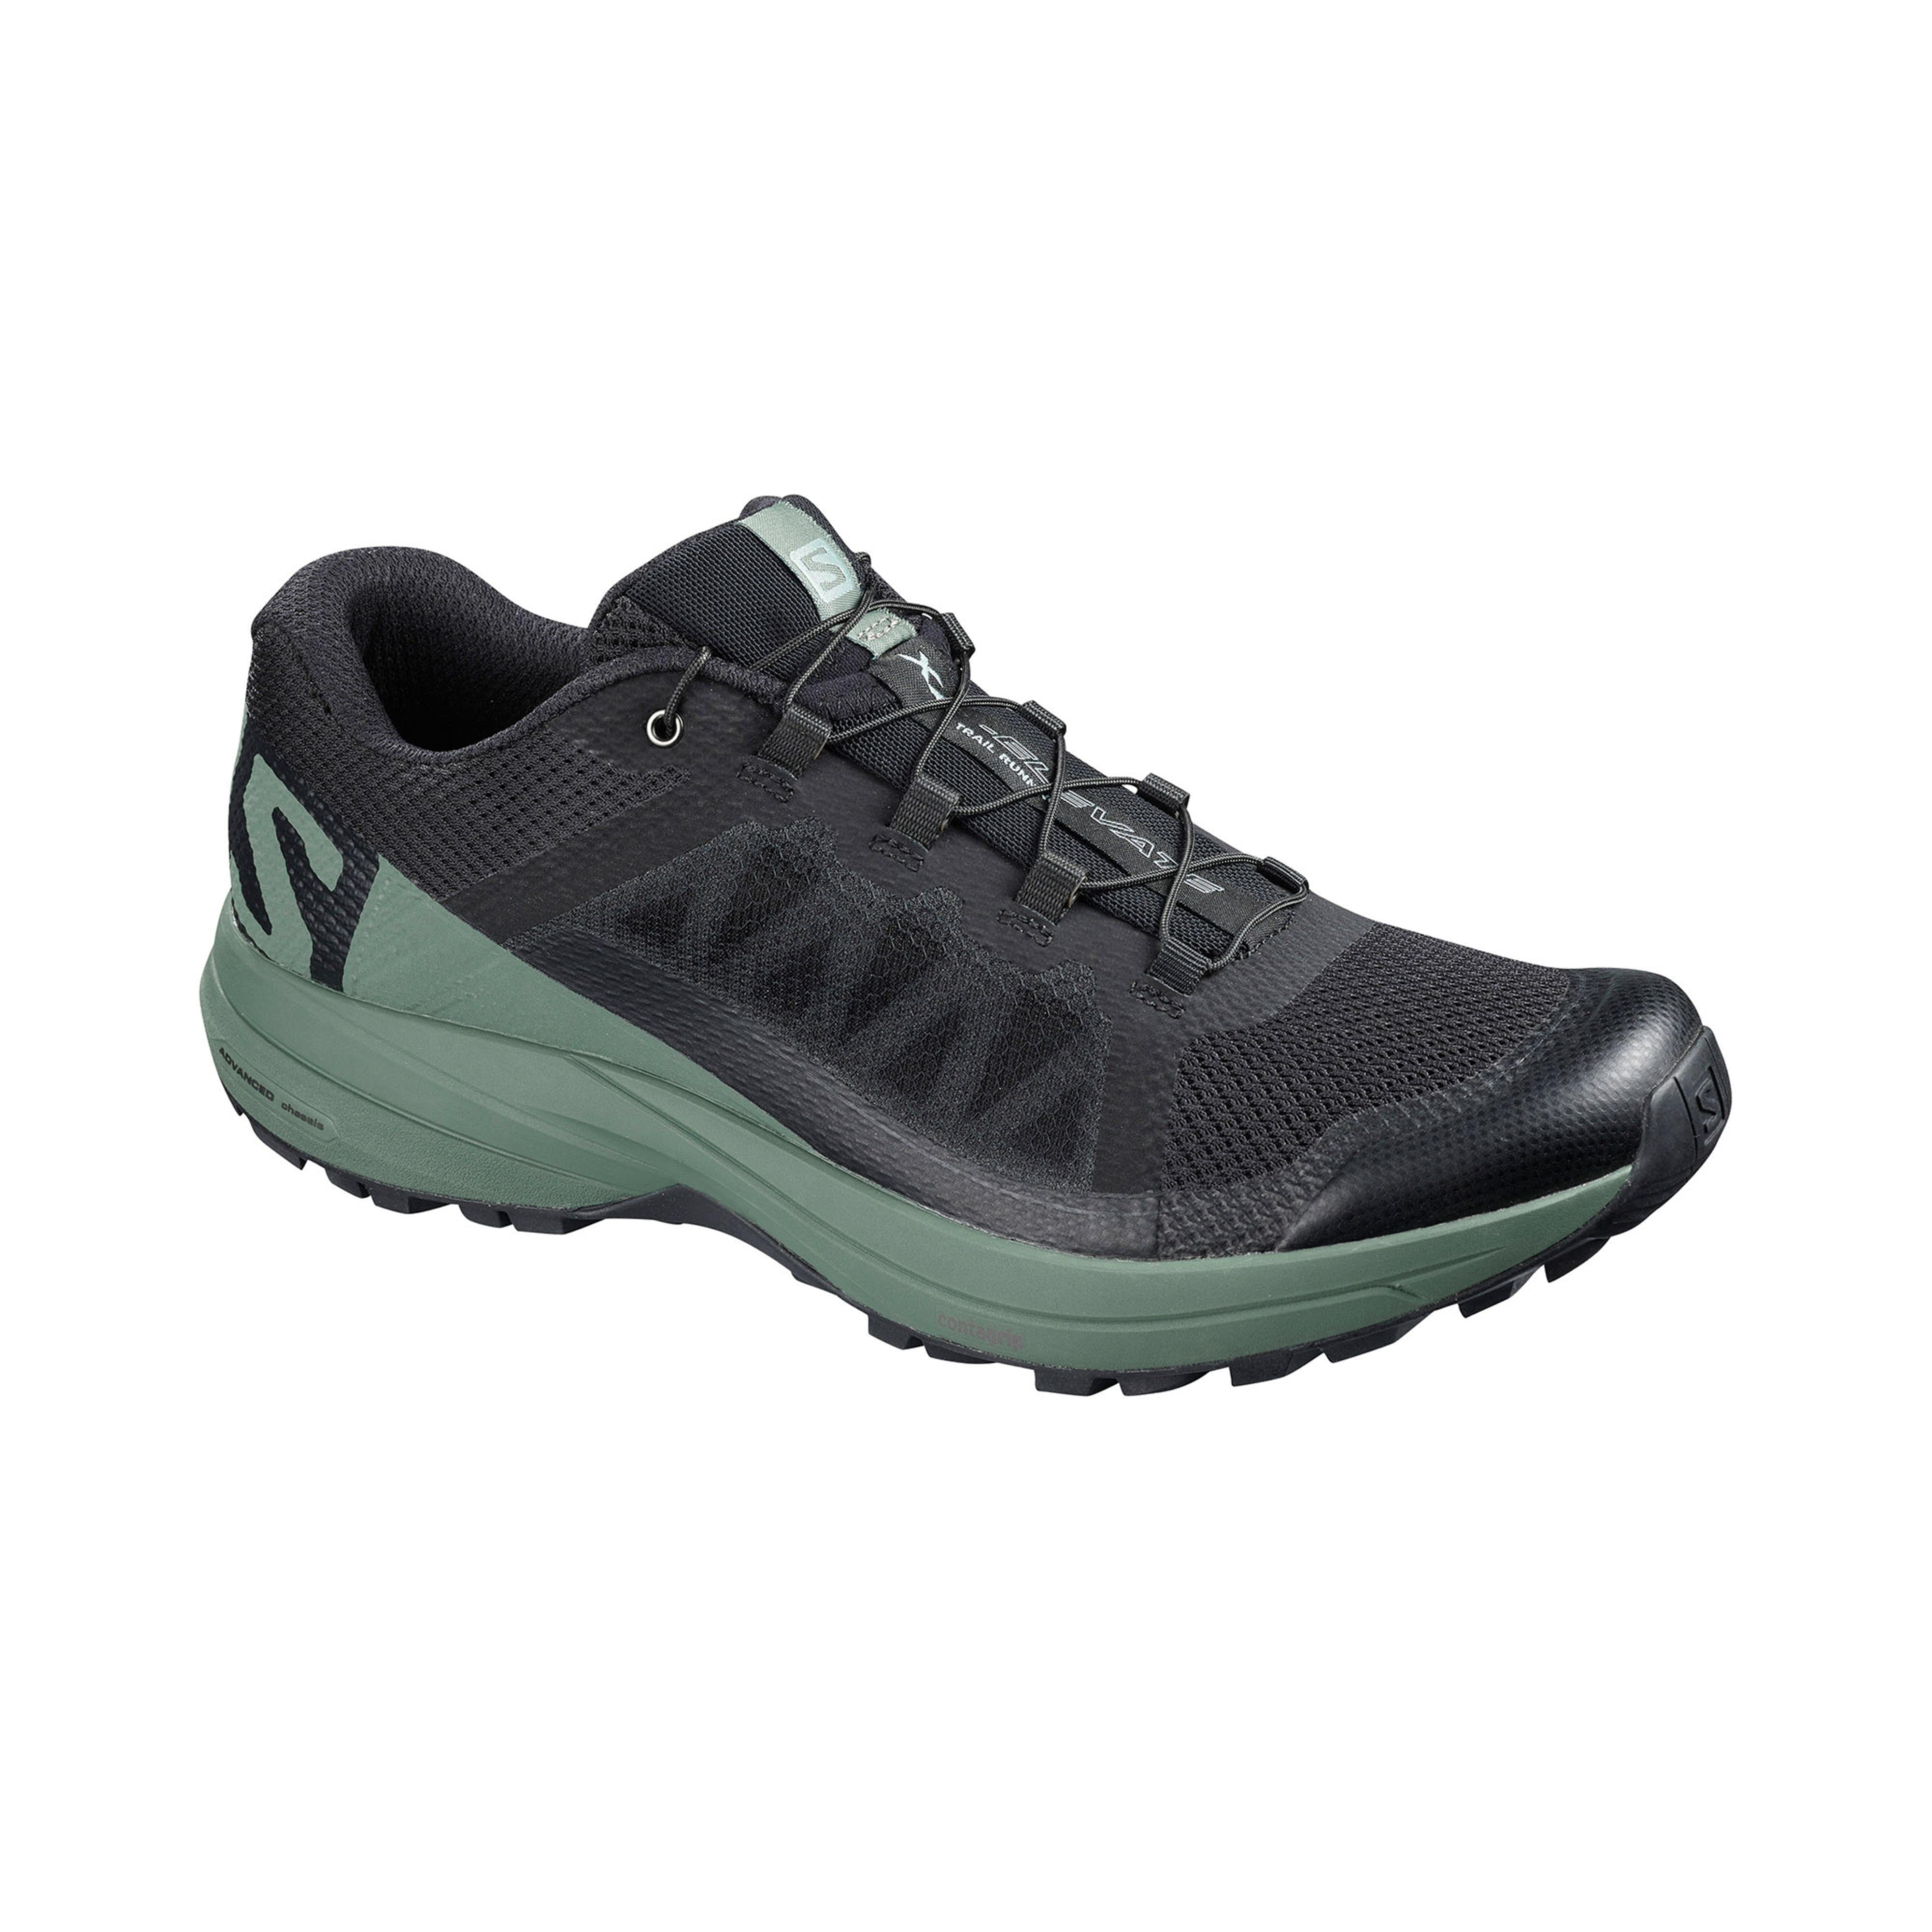 hot sale online bfb82 718c5 Salomon XA Elevate Men s Trail Running Shoes